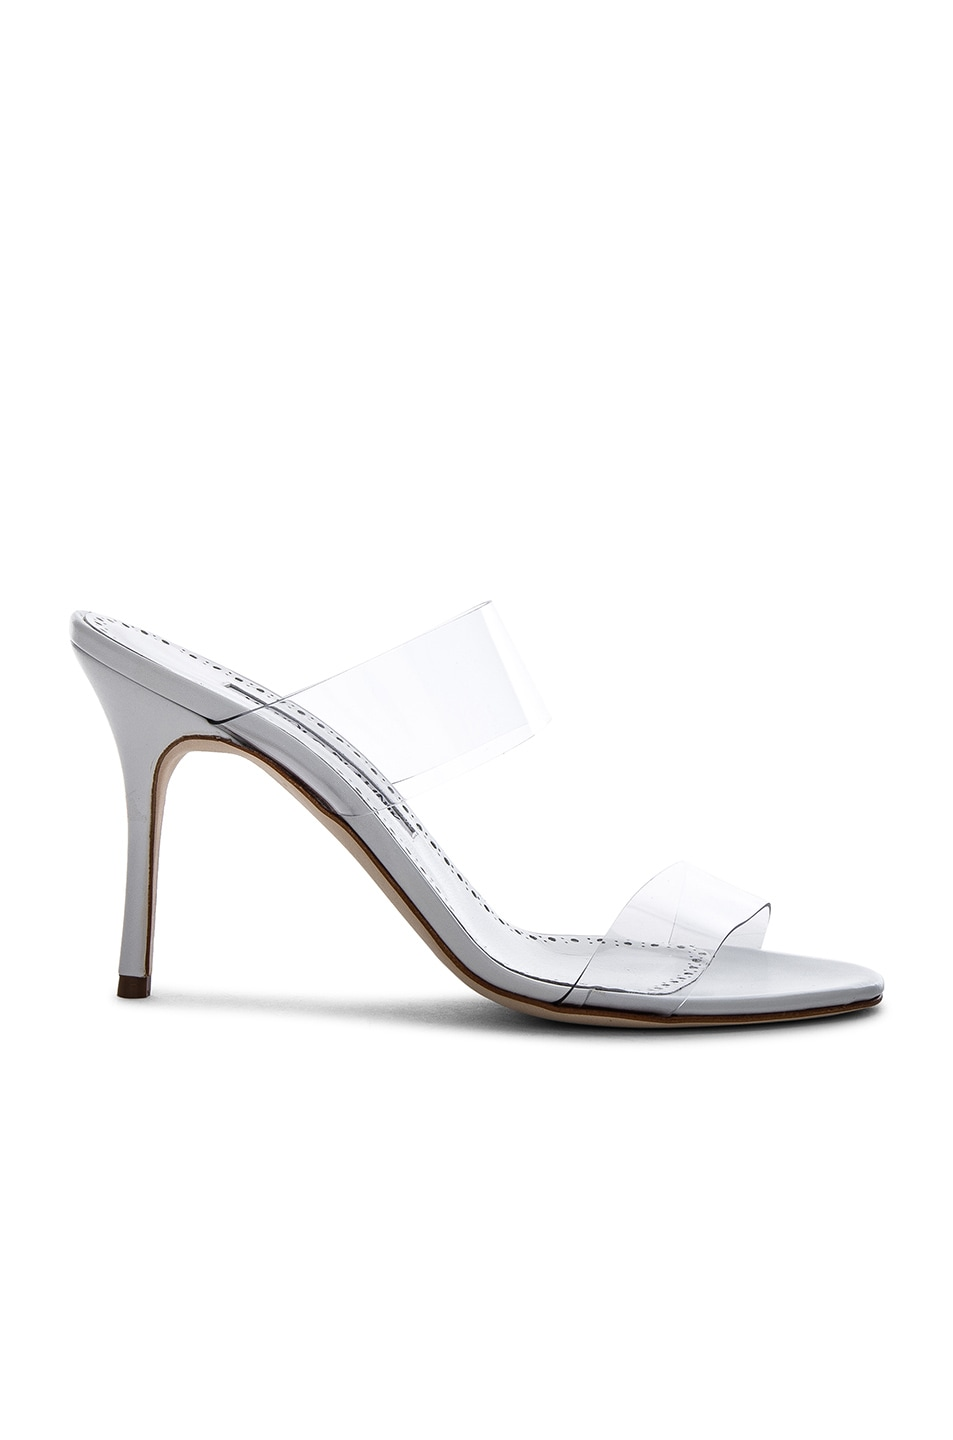 Image 1 of Manolo Blahnik PVC Scolto Sandals in White Leather